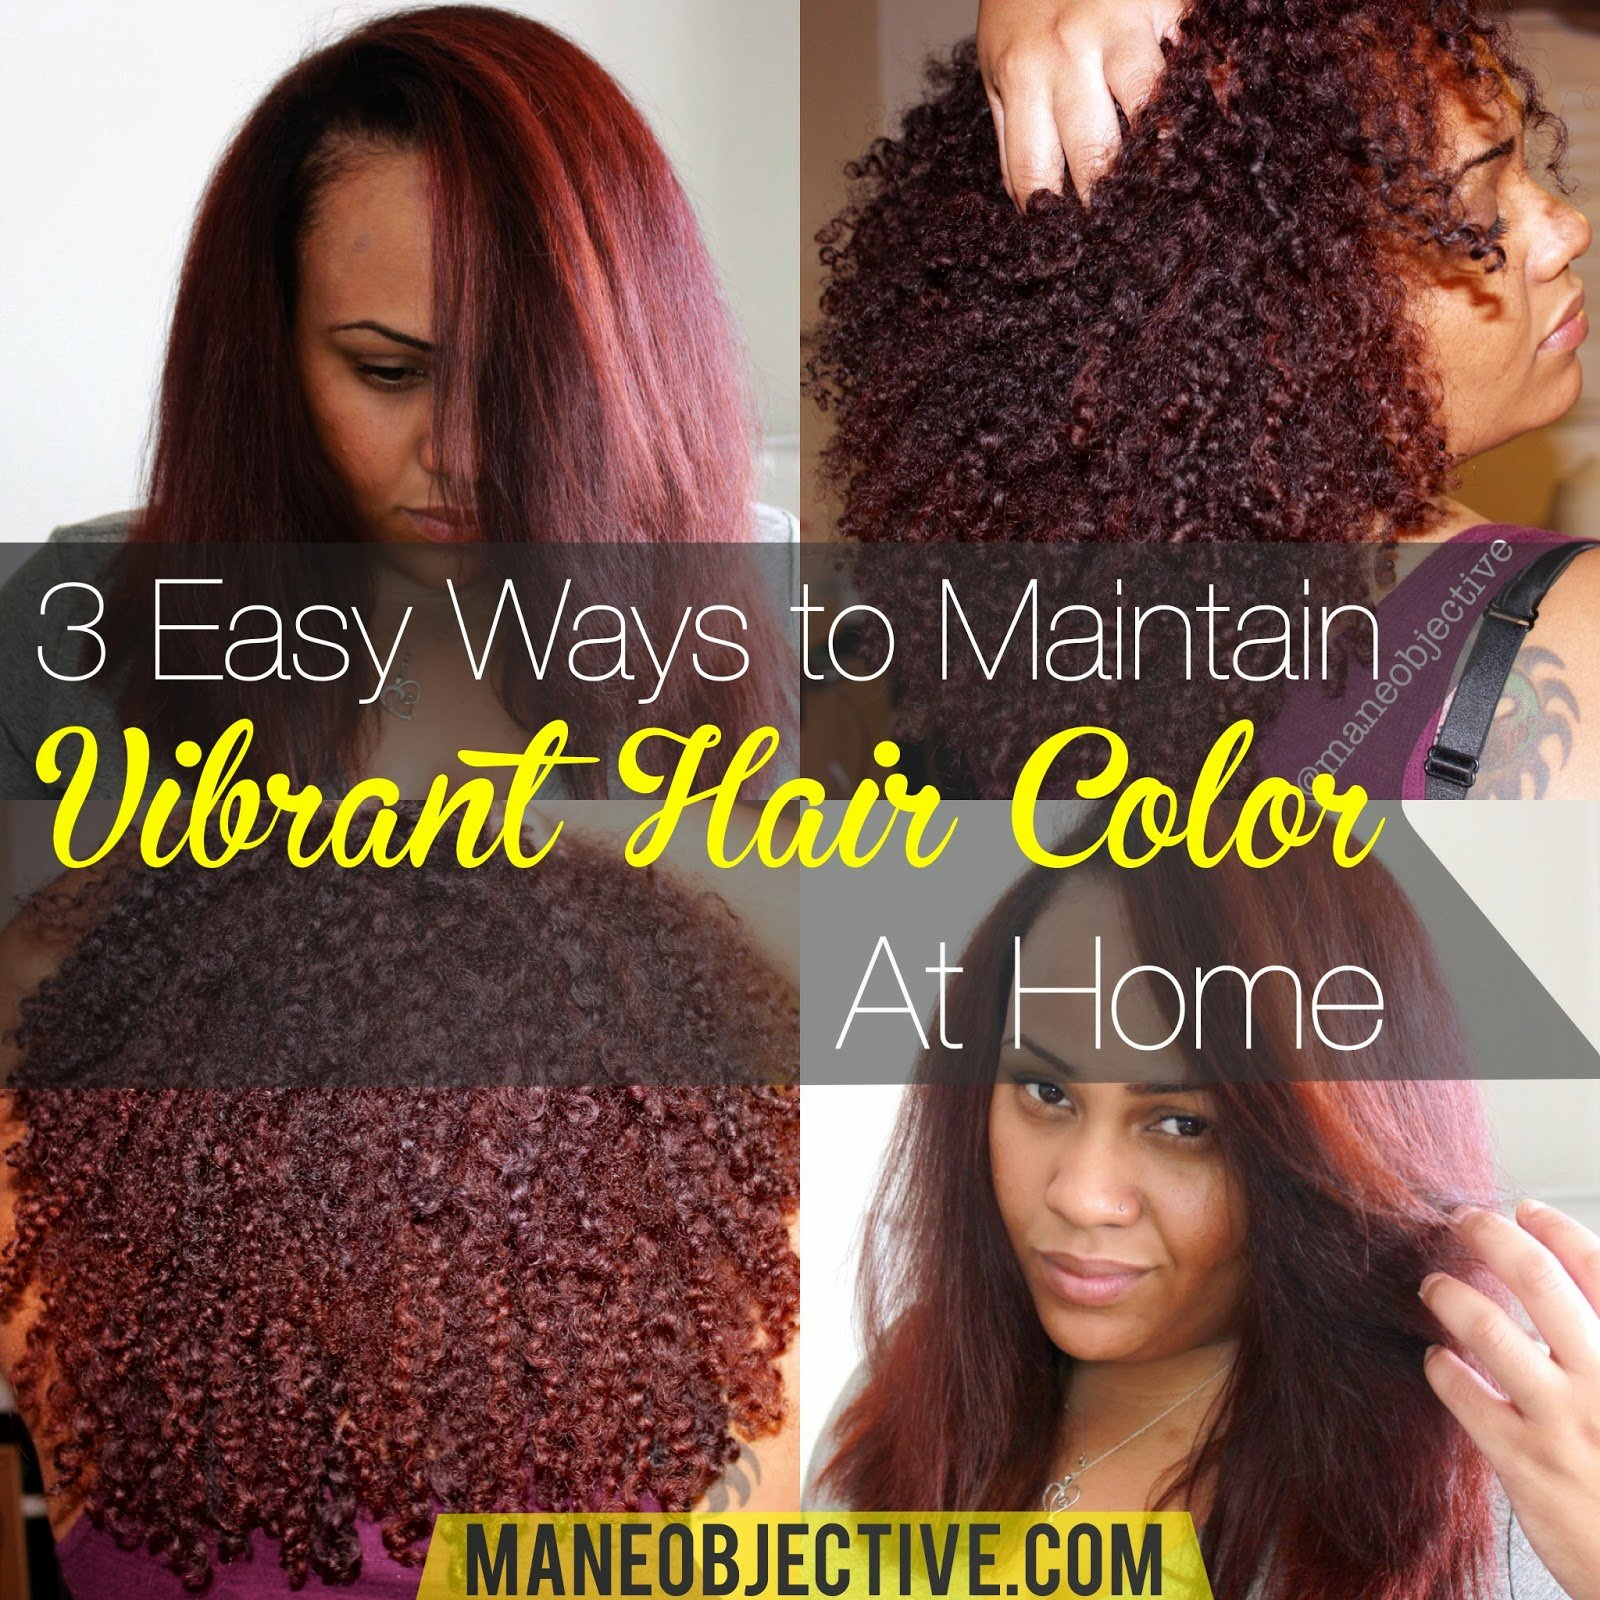 The Best The Mane Objective 3 Easy Ways To Maintain Vibrant Hair Color At Home Pictures